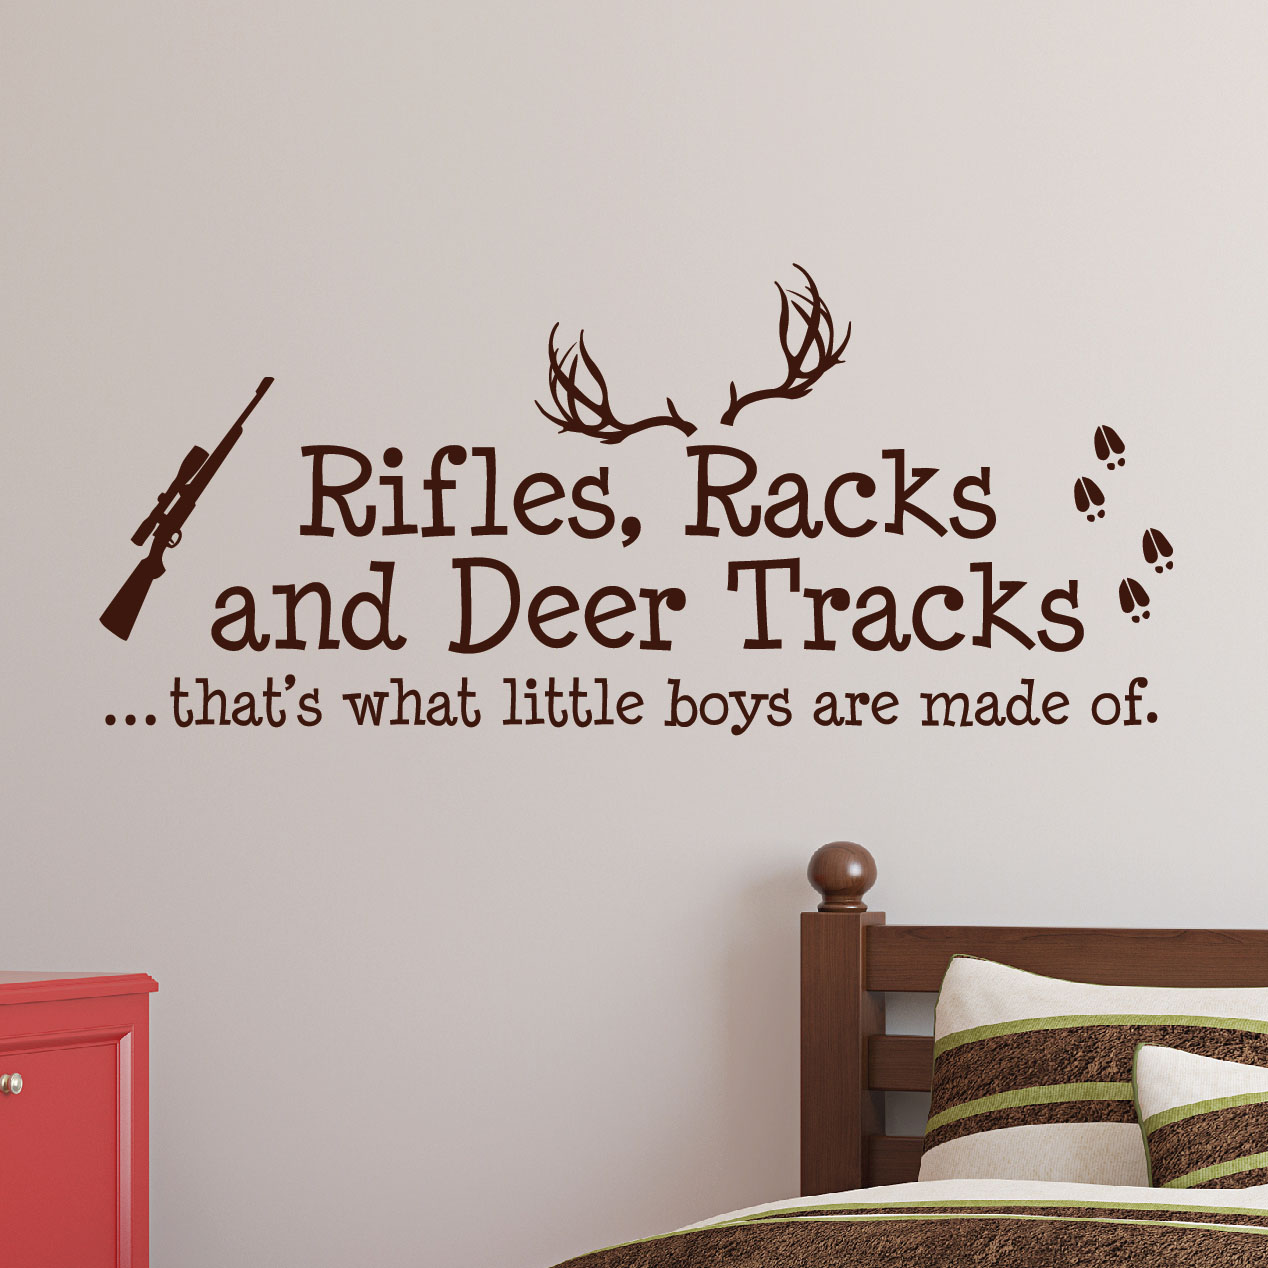 rifles-tacks-and-deer-tracks-1279-bedroom.jpg